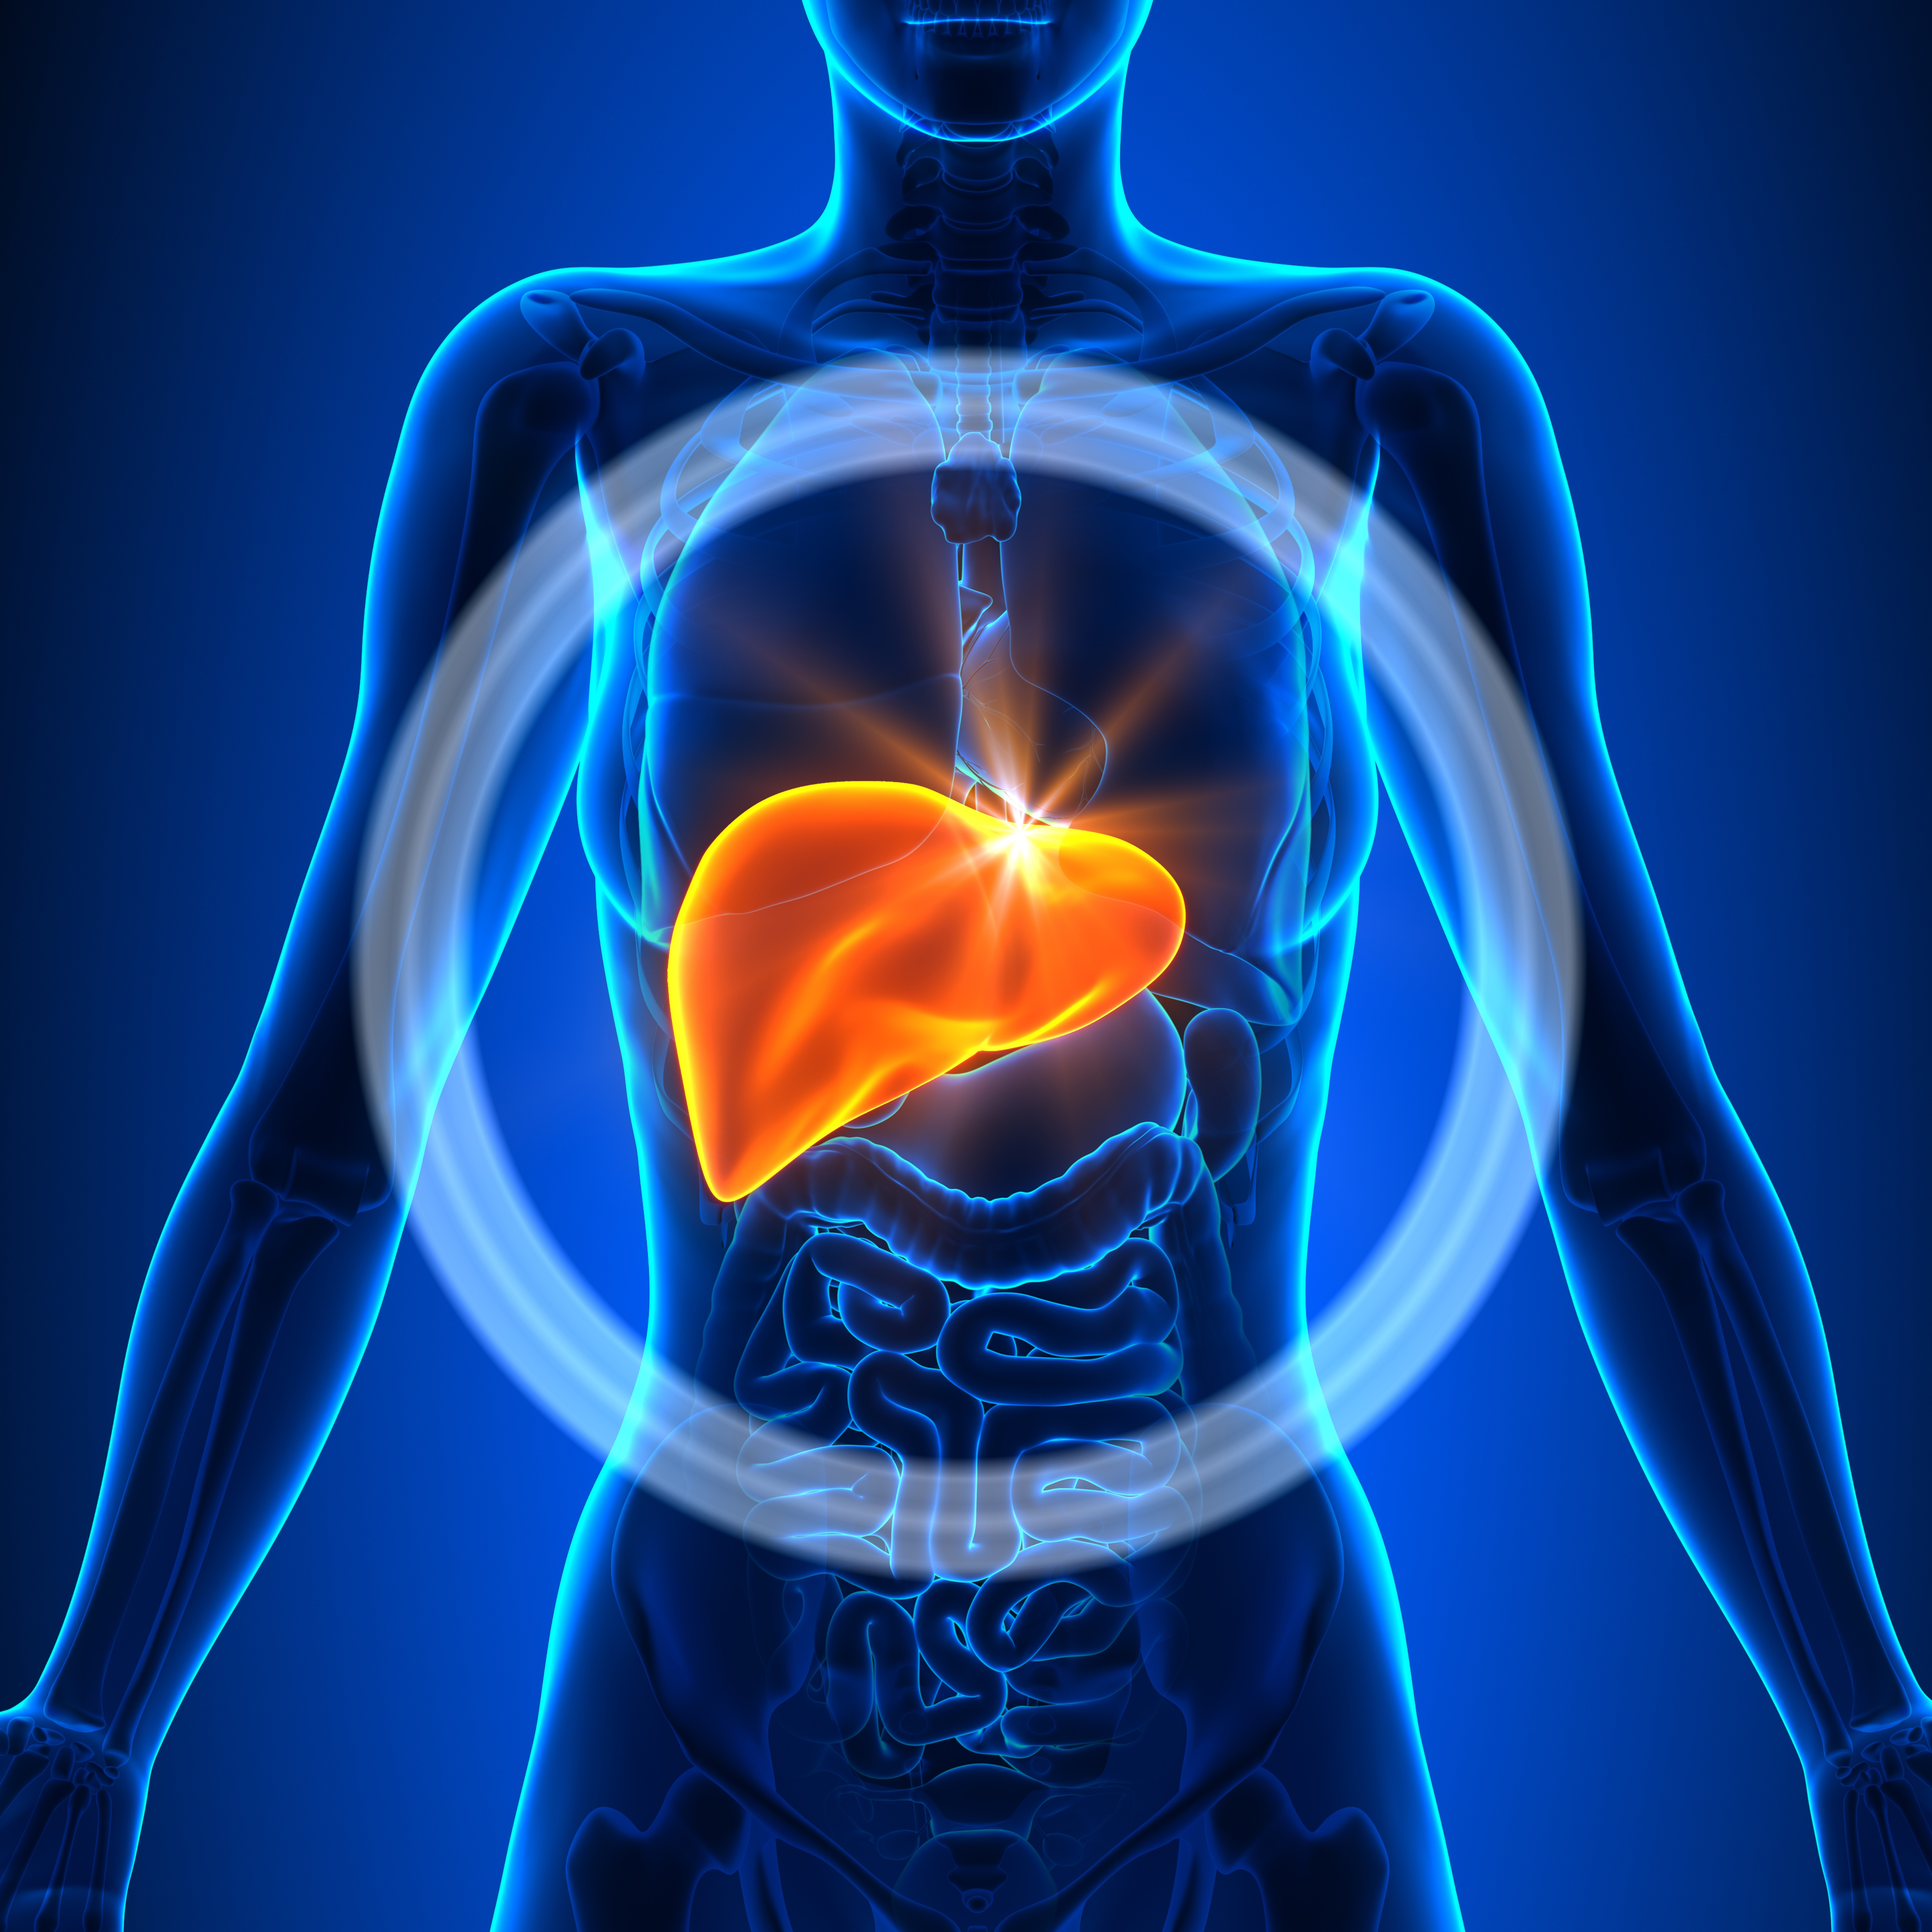 Type 2 Diabetes Patients at Risk of Developing Nonalcoholic Fatty Liver Disease and Advanced Fibrosis